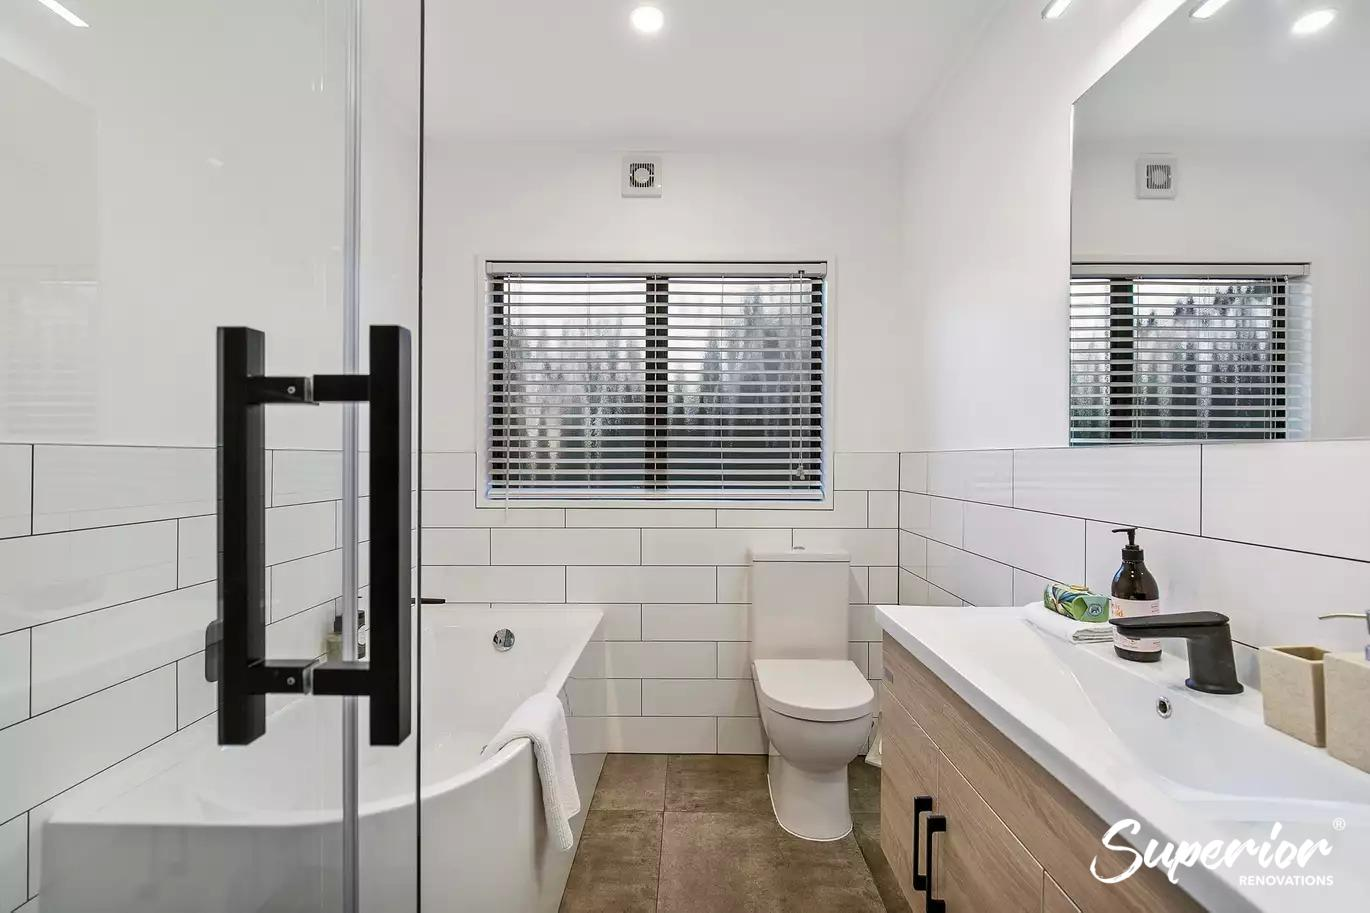 18 Top Trends In Bathroom Tile Design For 2021 Nz Edition